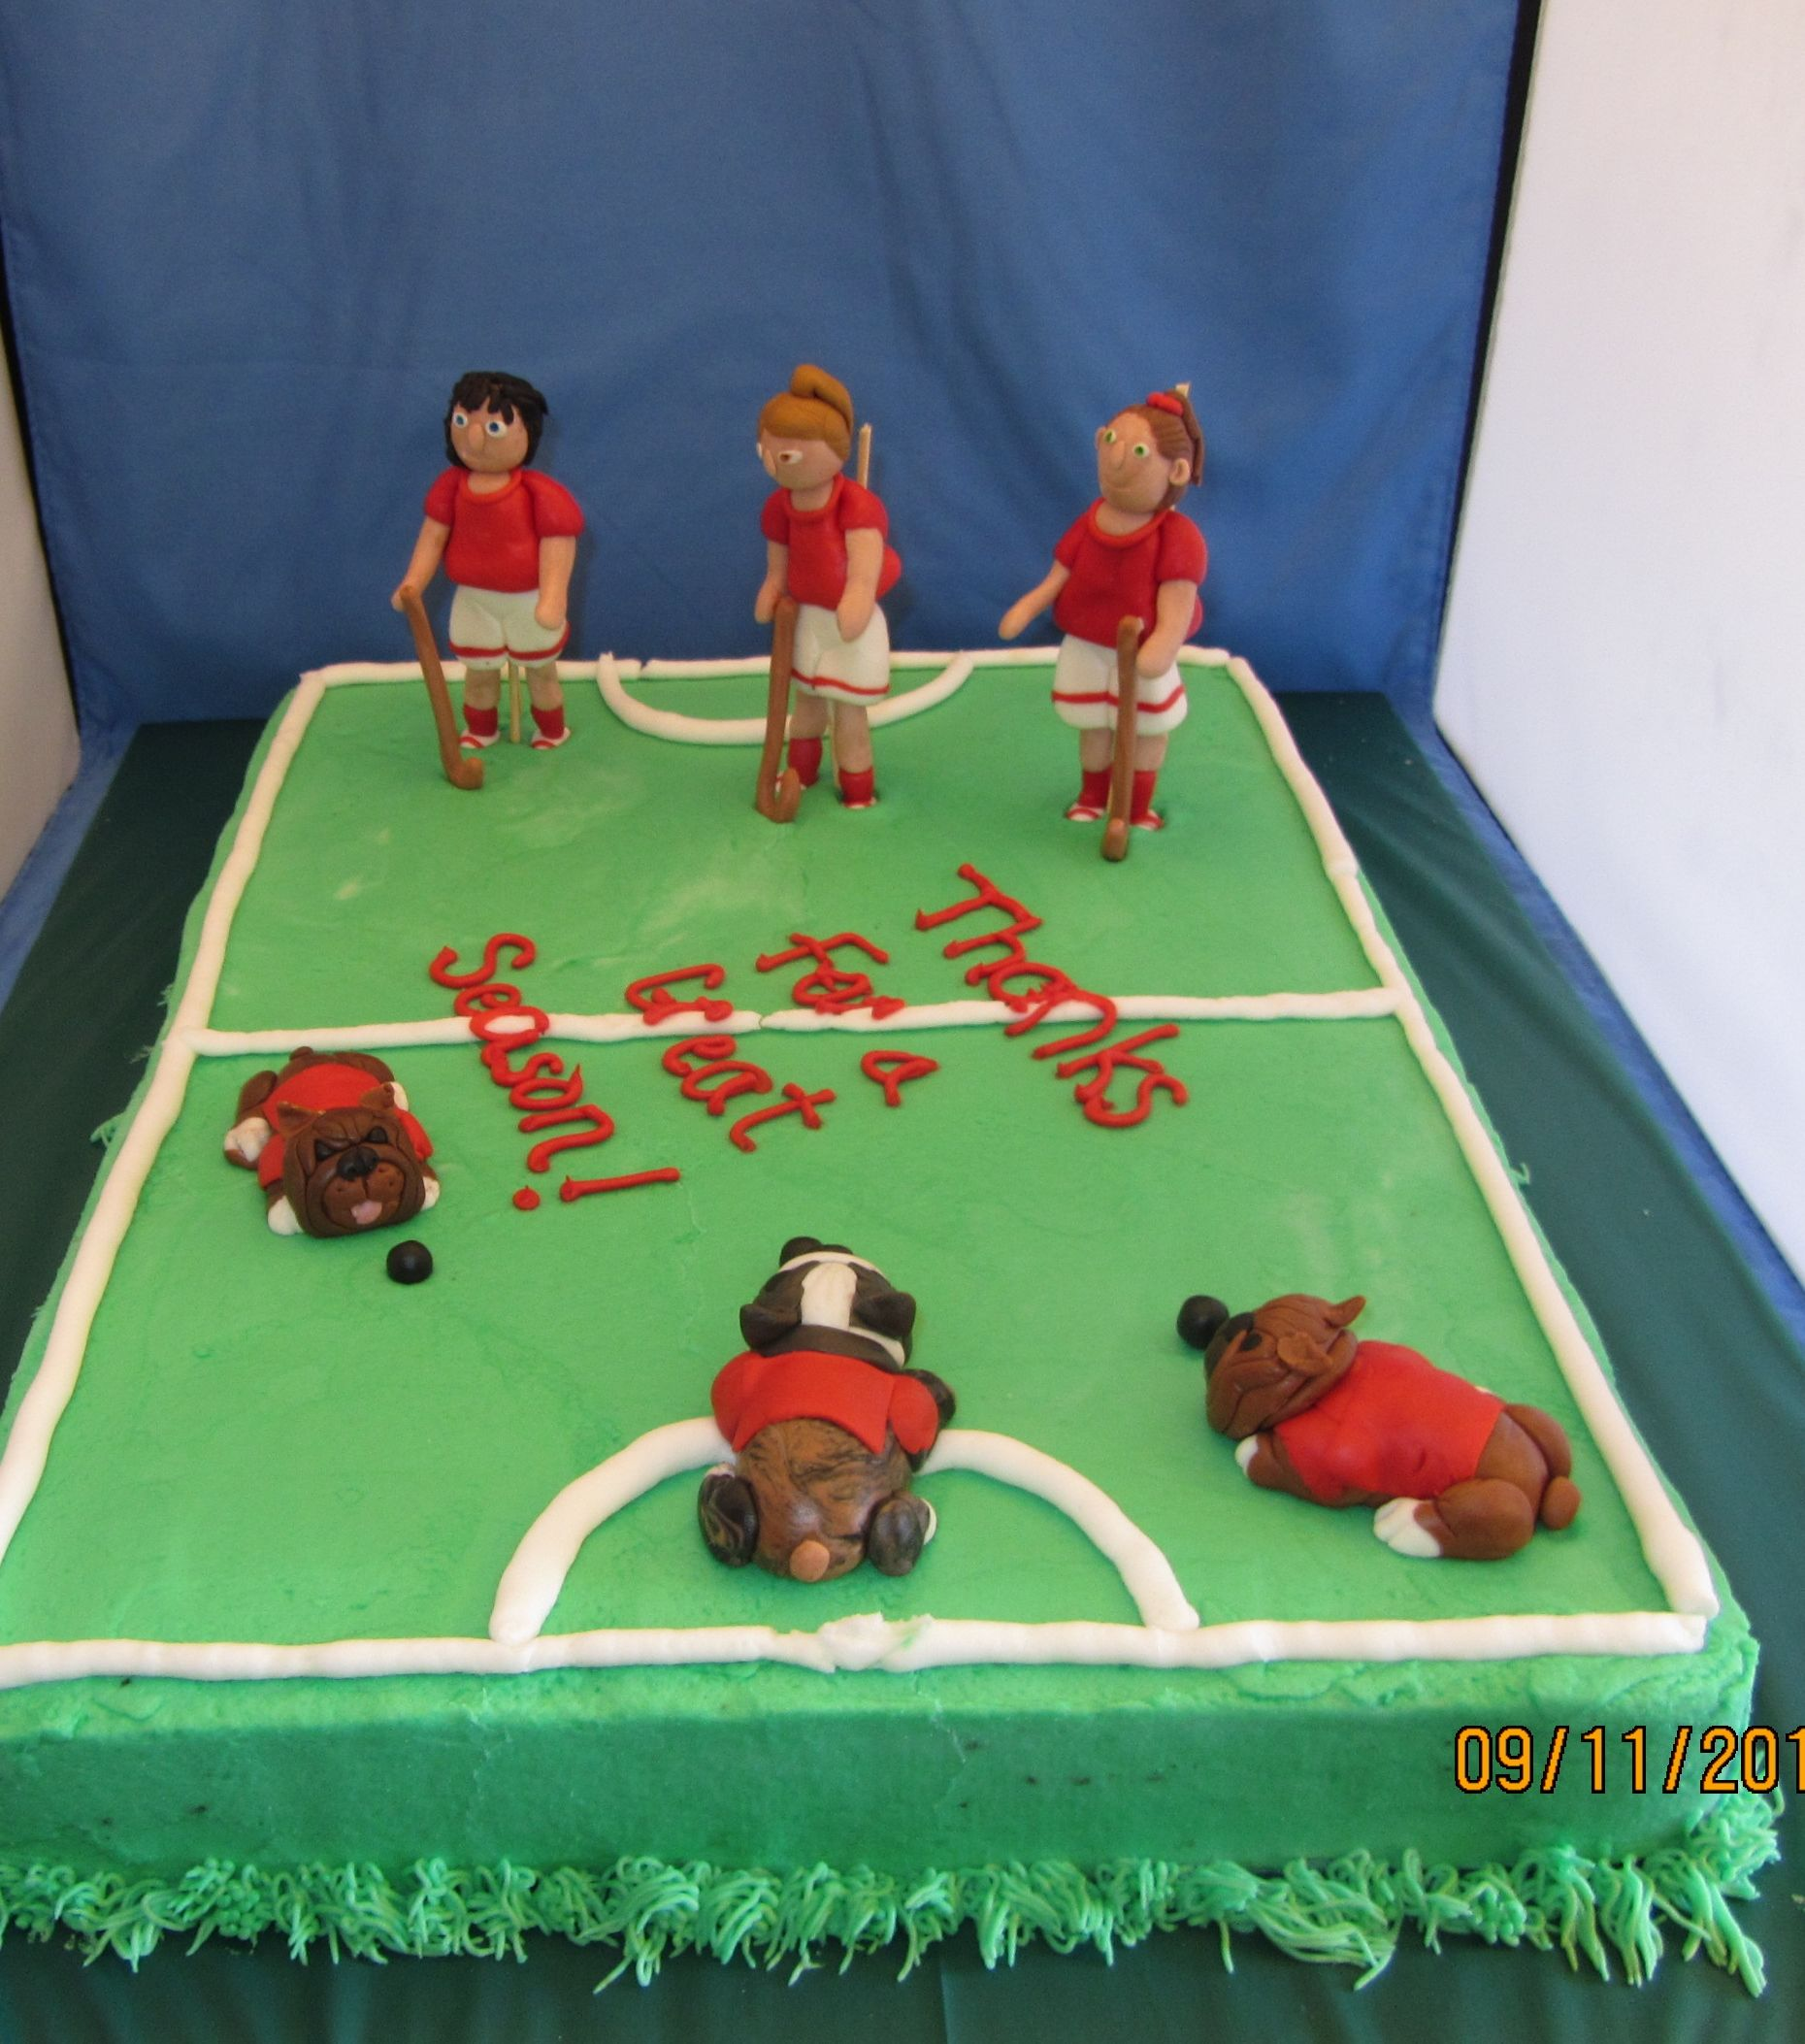 Field Hockey Cake Perfect For End Of The Season Celebrations